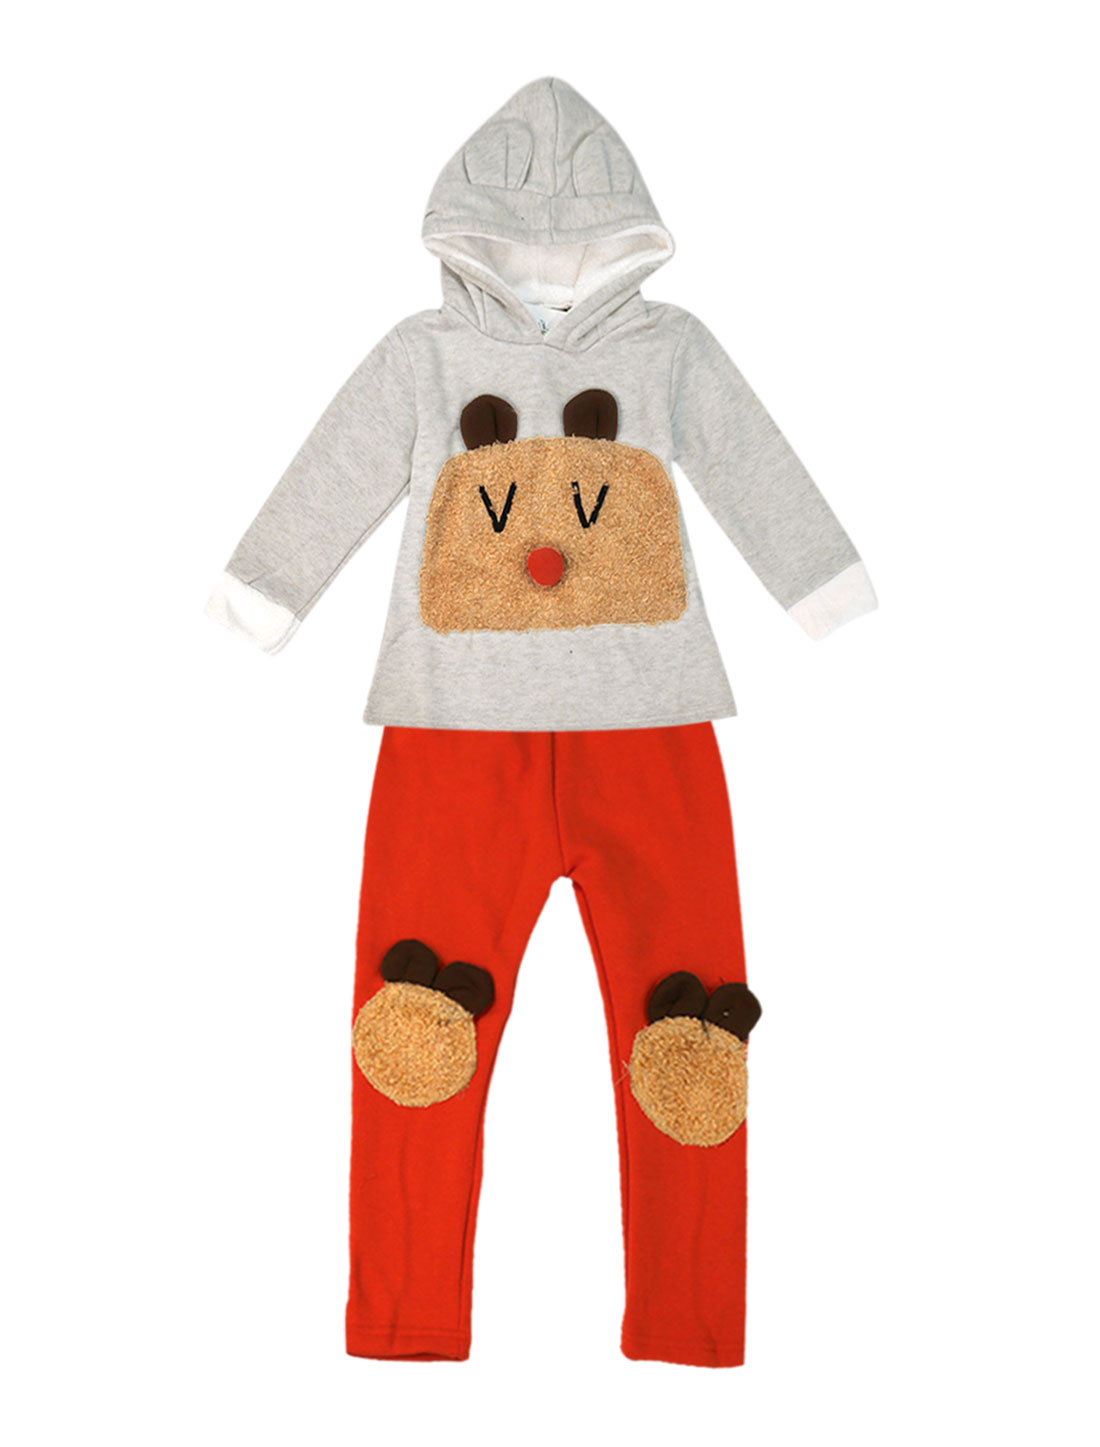 Sweet Girls Hooded Tops & Warm Soft Pants Light Gray Orange Red 4T